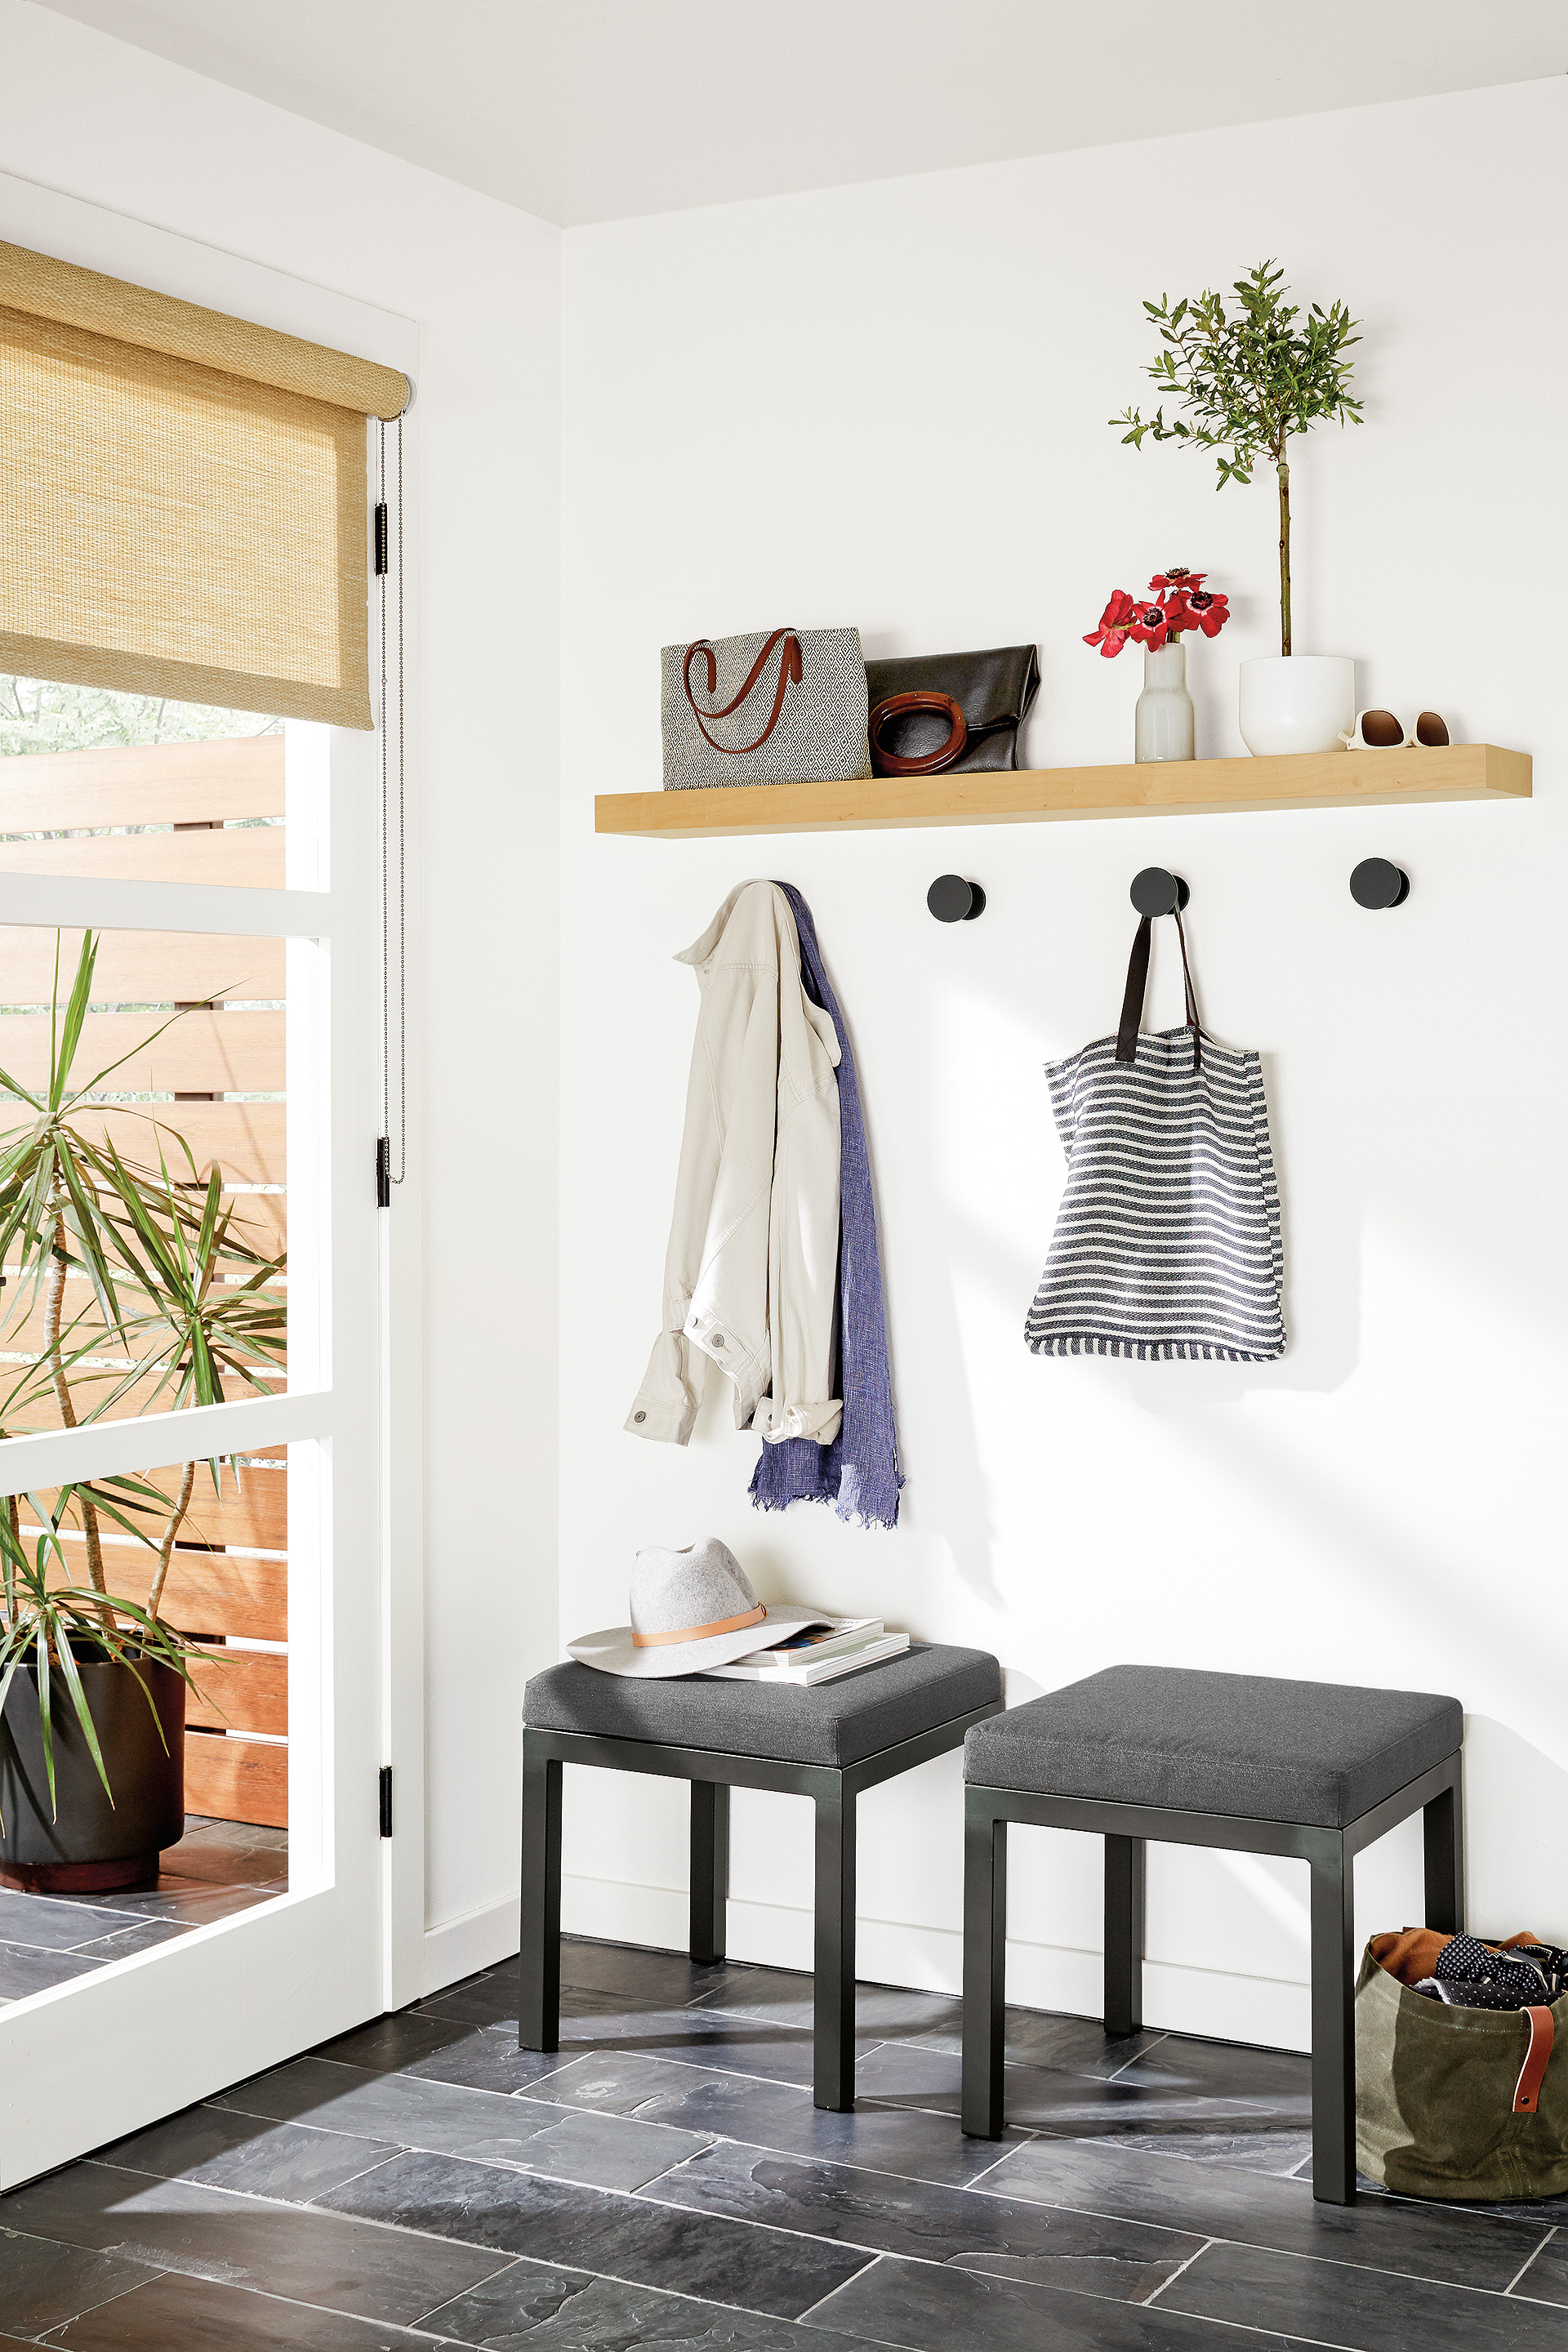 How To: 5 Tips for Organizing Your Entryway - Room & Board